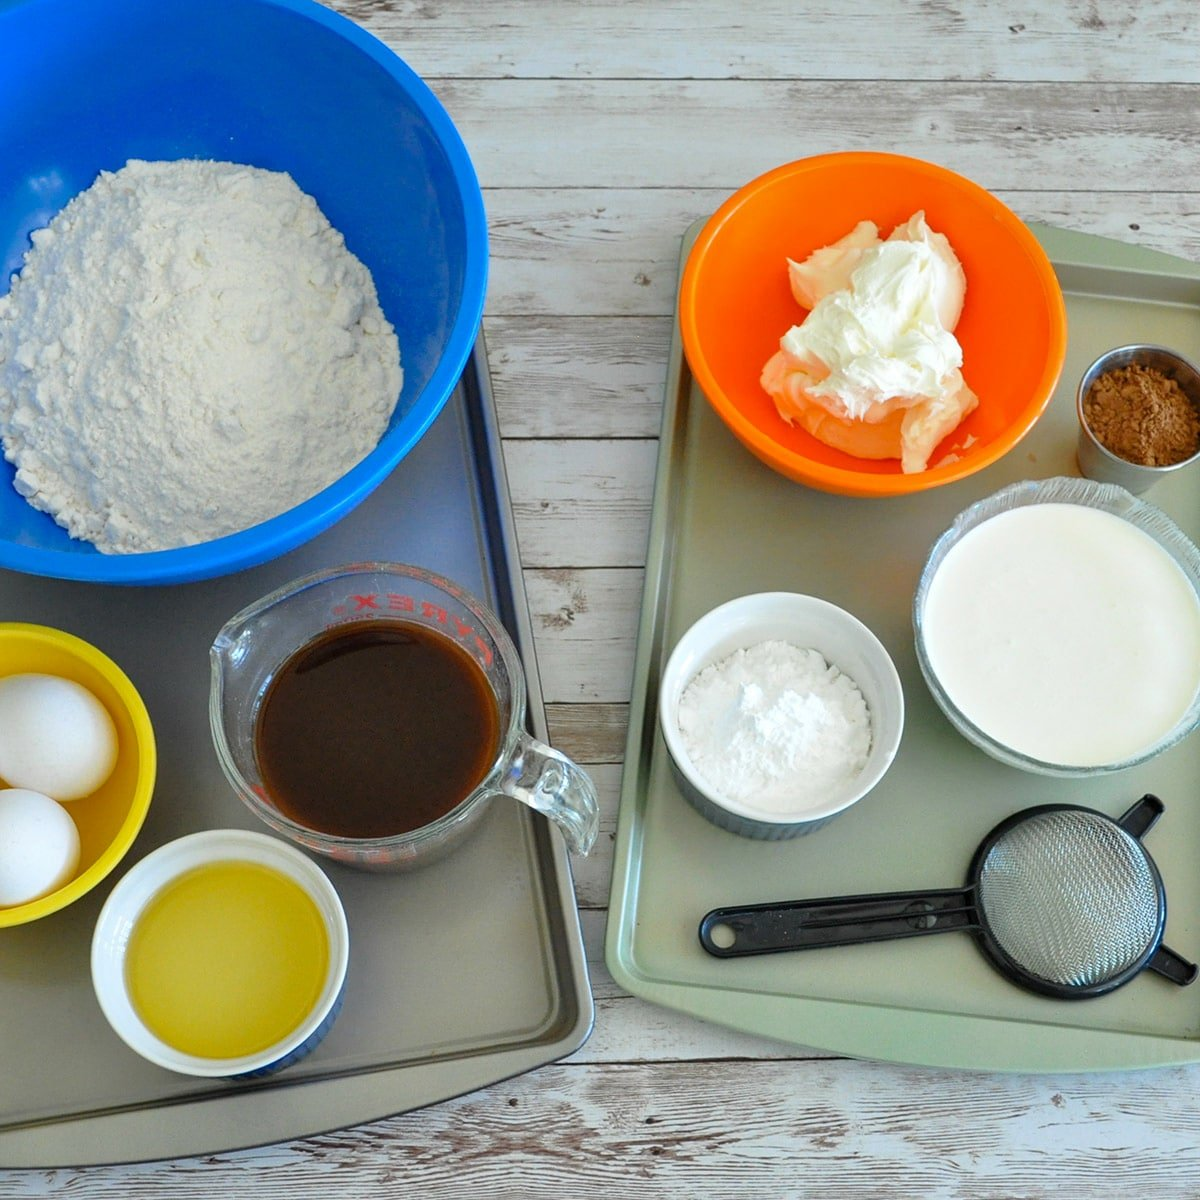 white cake mix in a blue bowl, eggs, oil, coffee, mascarpone, powdered sugar, and cream measured out for a recipe